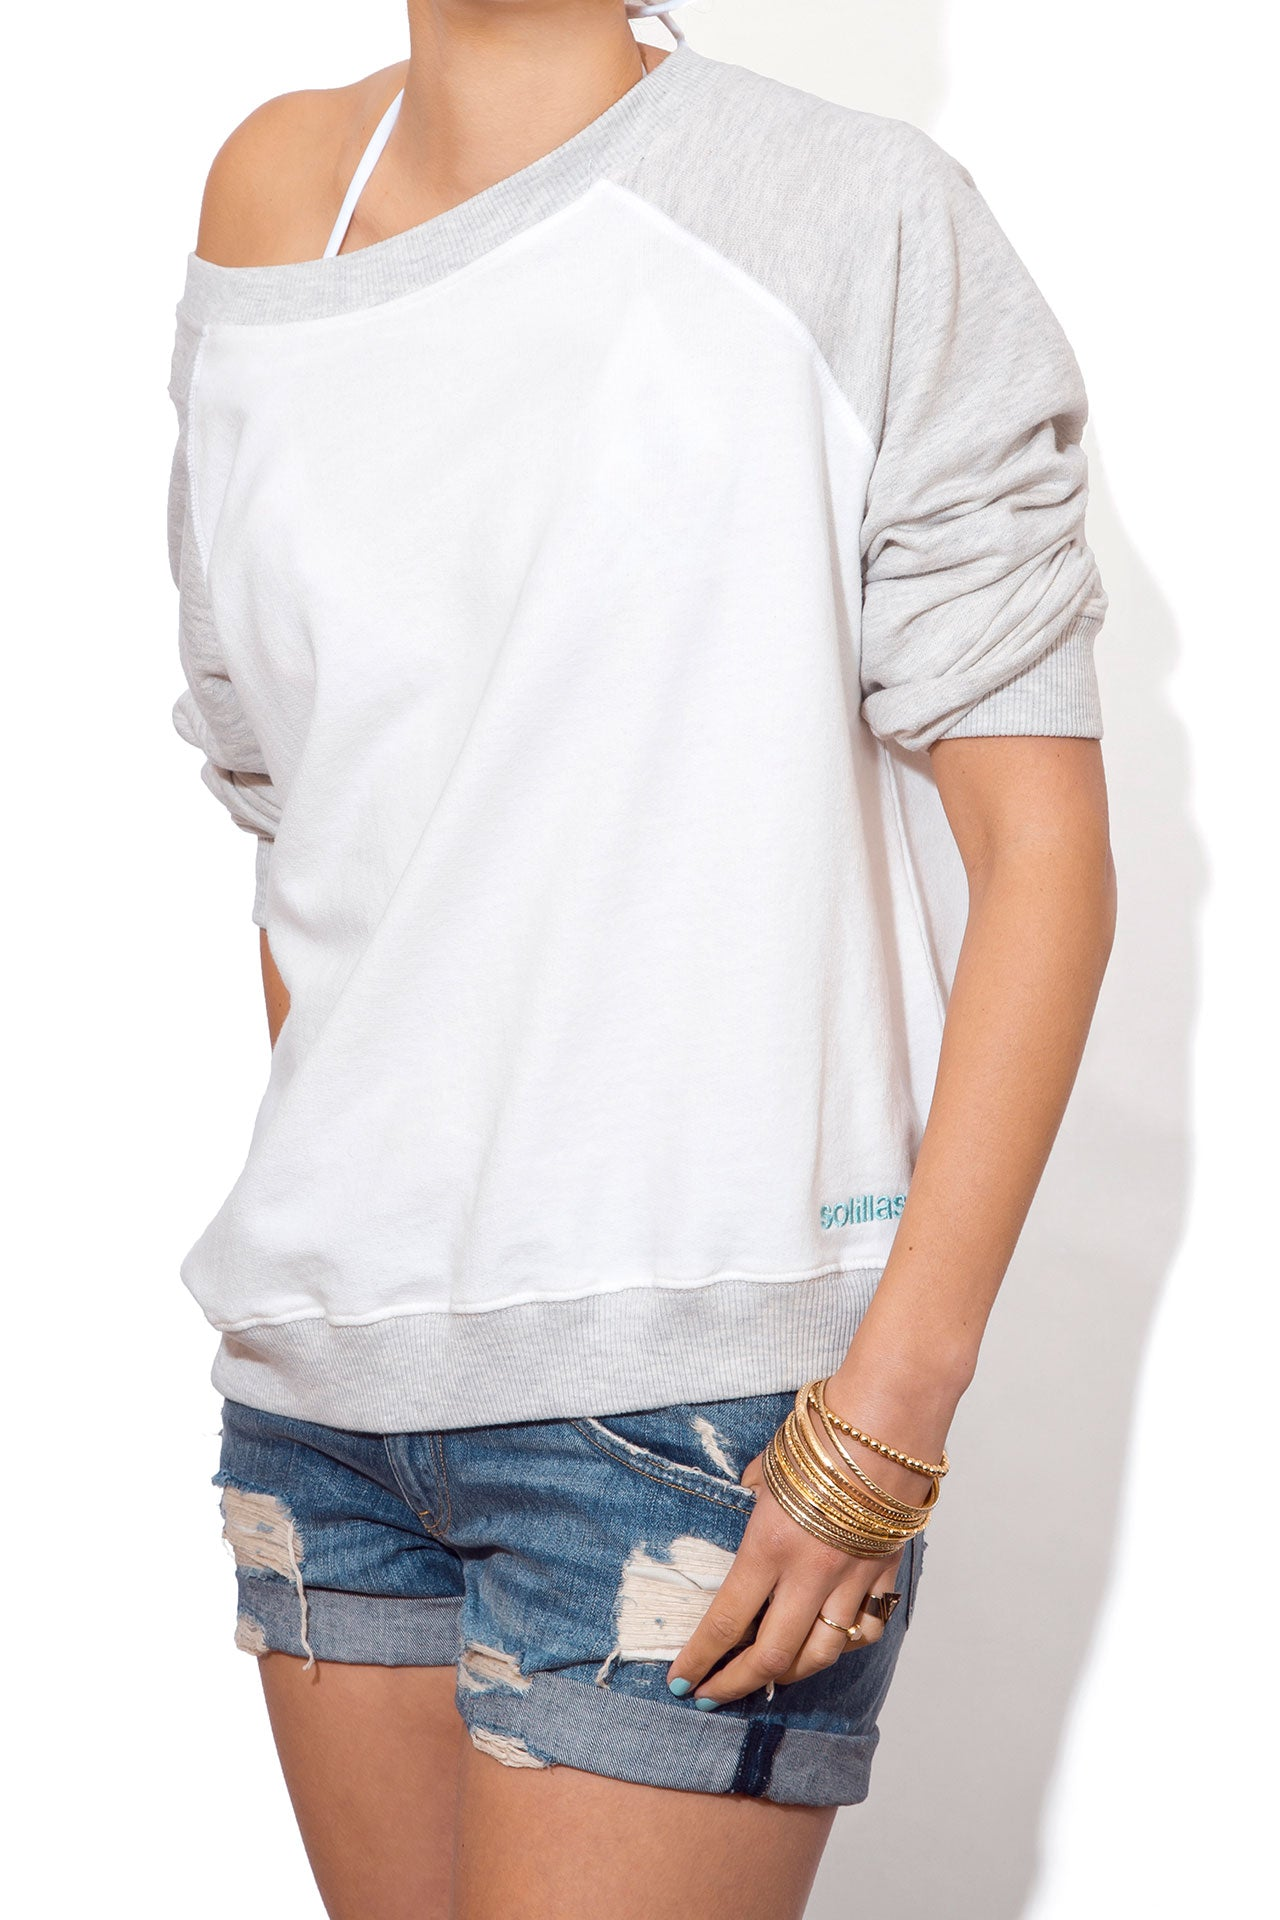 Women's Slouchy Sweatshirt - Two Tone